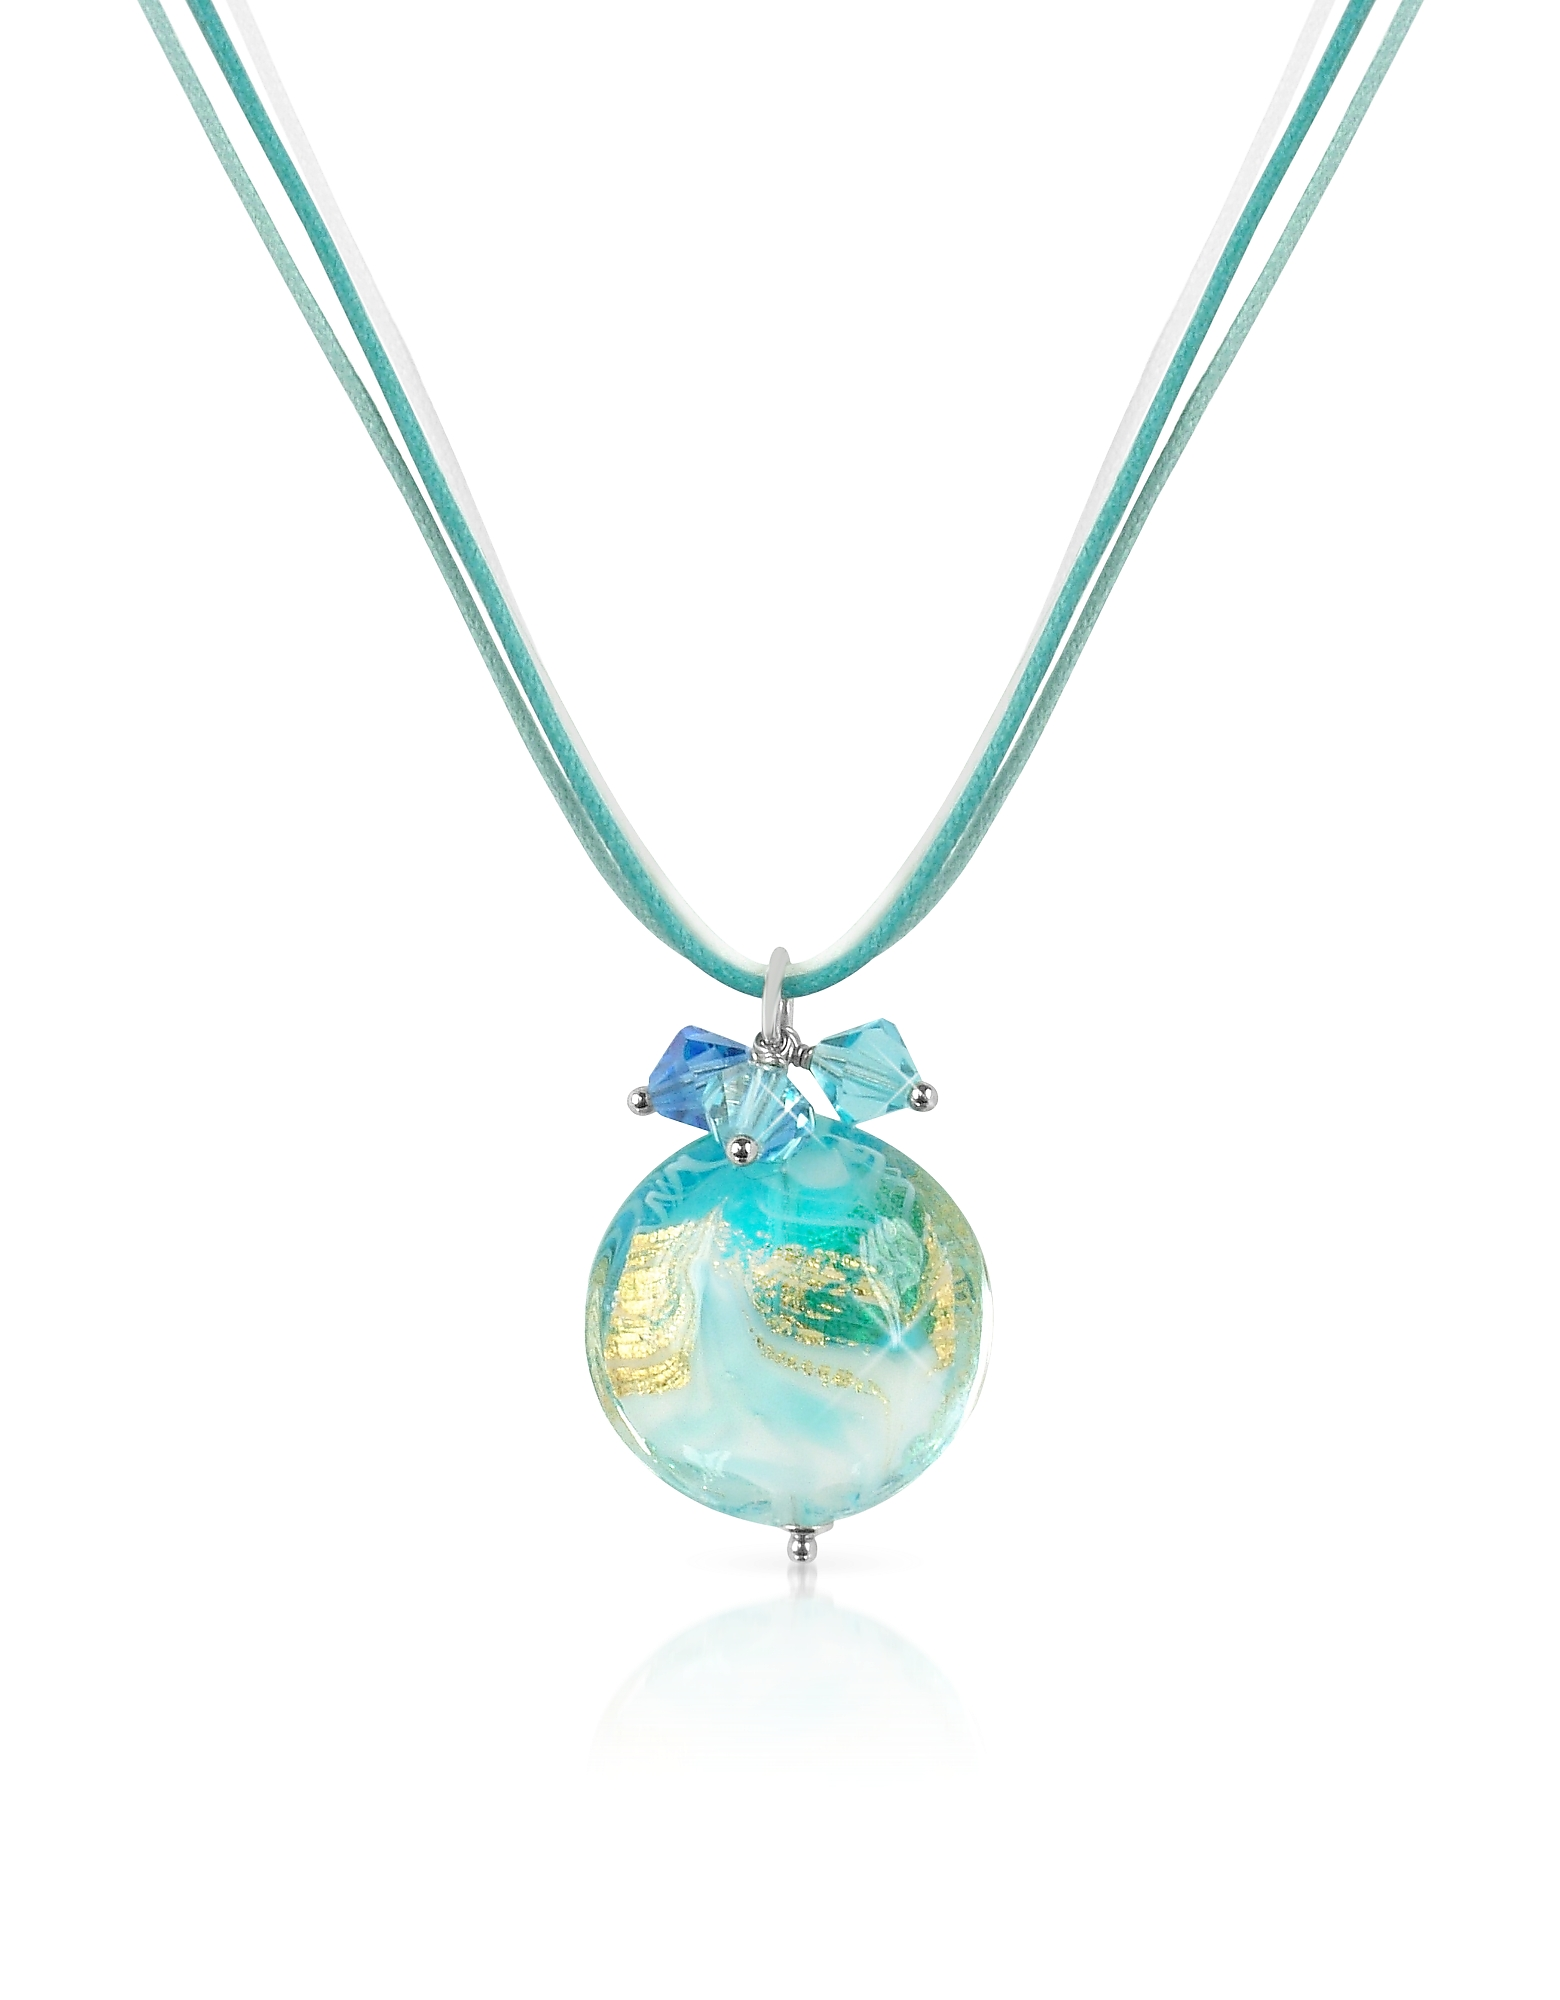 House of Murano Designer Necklaces, Mare - Turquoise Murano Glass Pendant w/ Lace